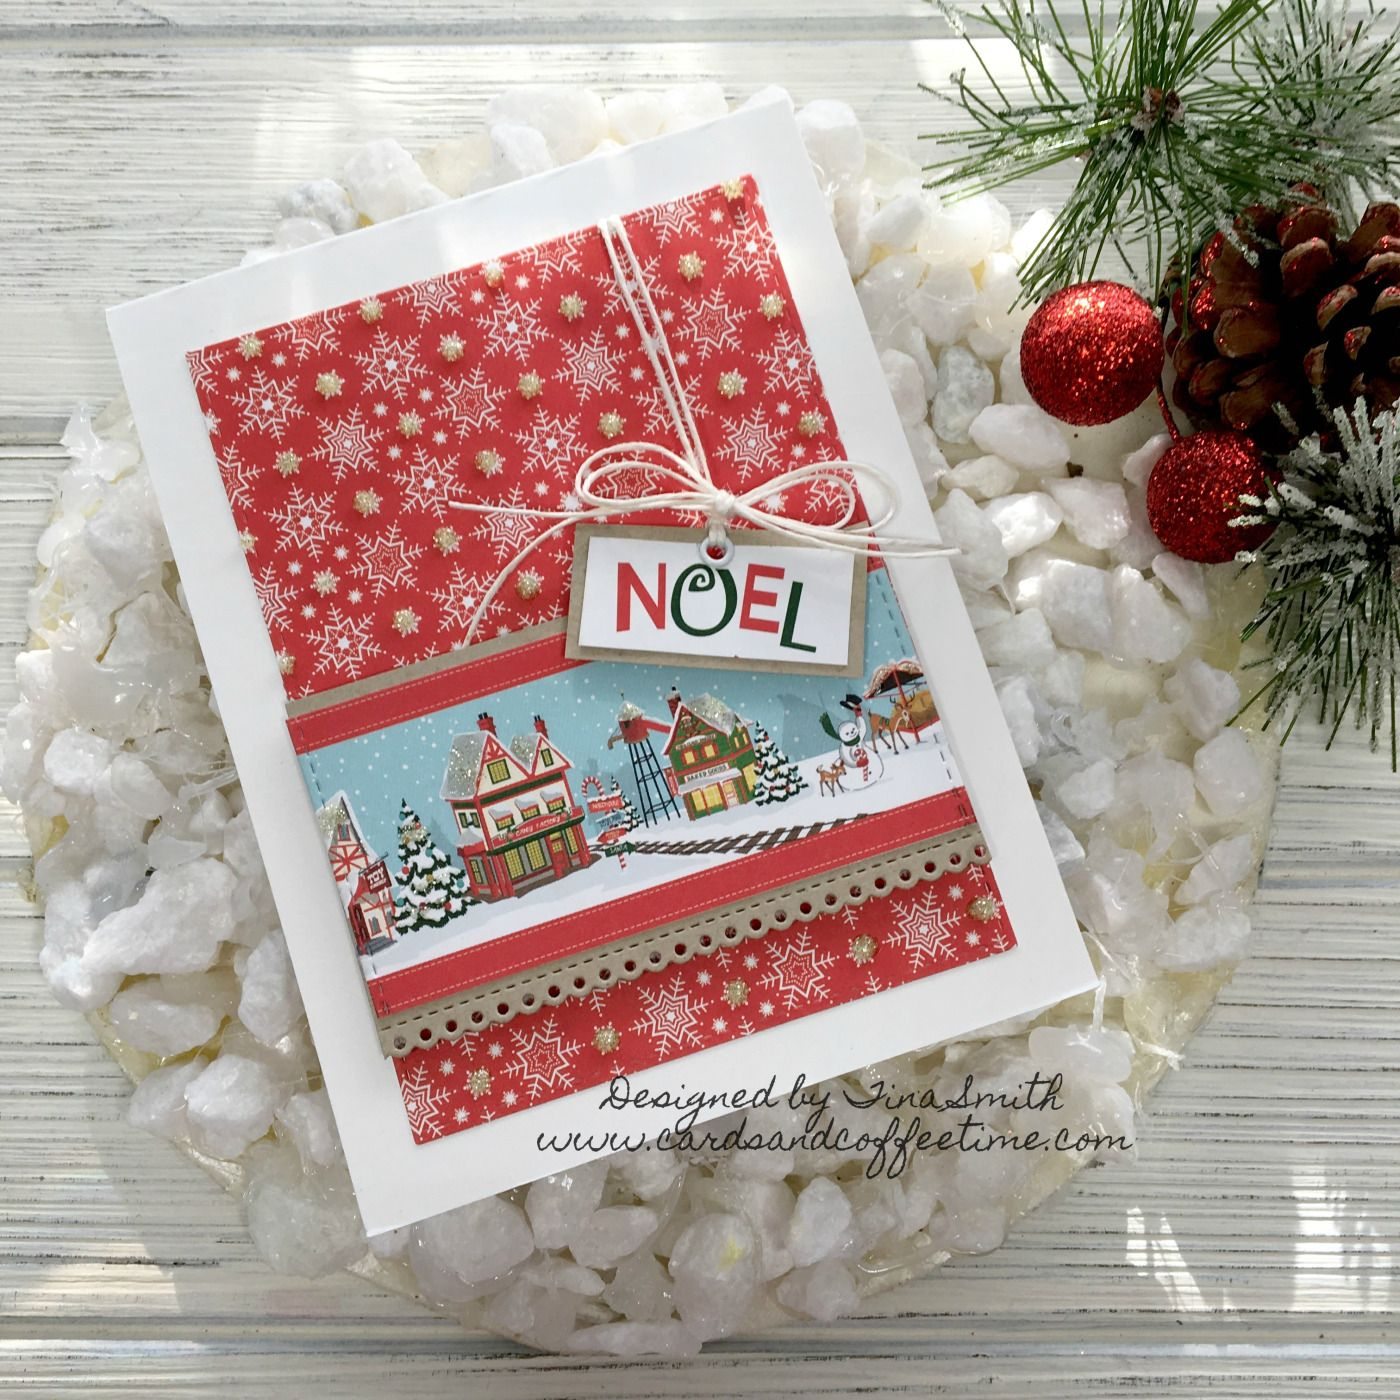 10 Cards – 1 Kit Simon Says Stamp Dec 2018 Card Kit | Cards and Coffee Time #cardkit